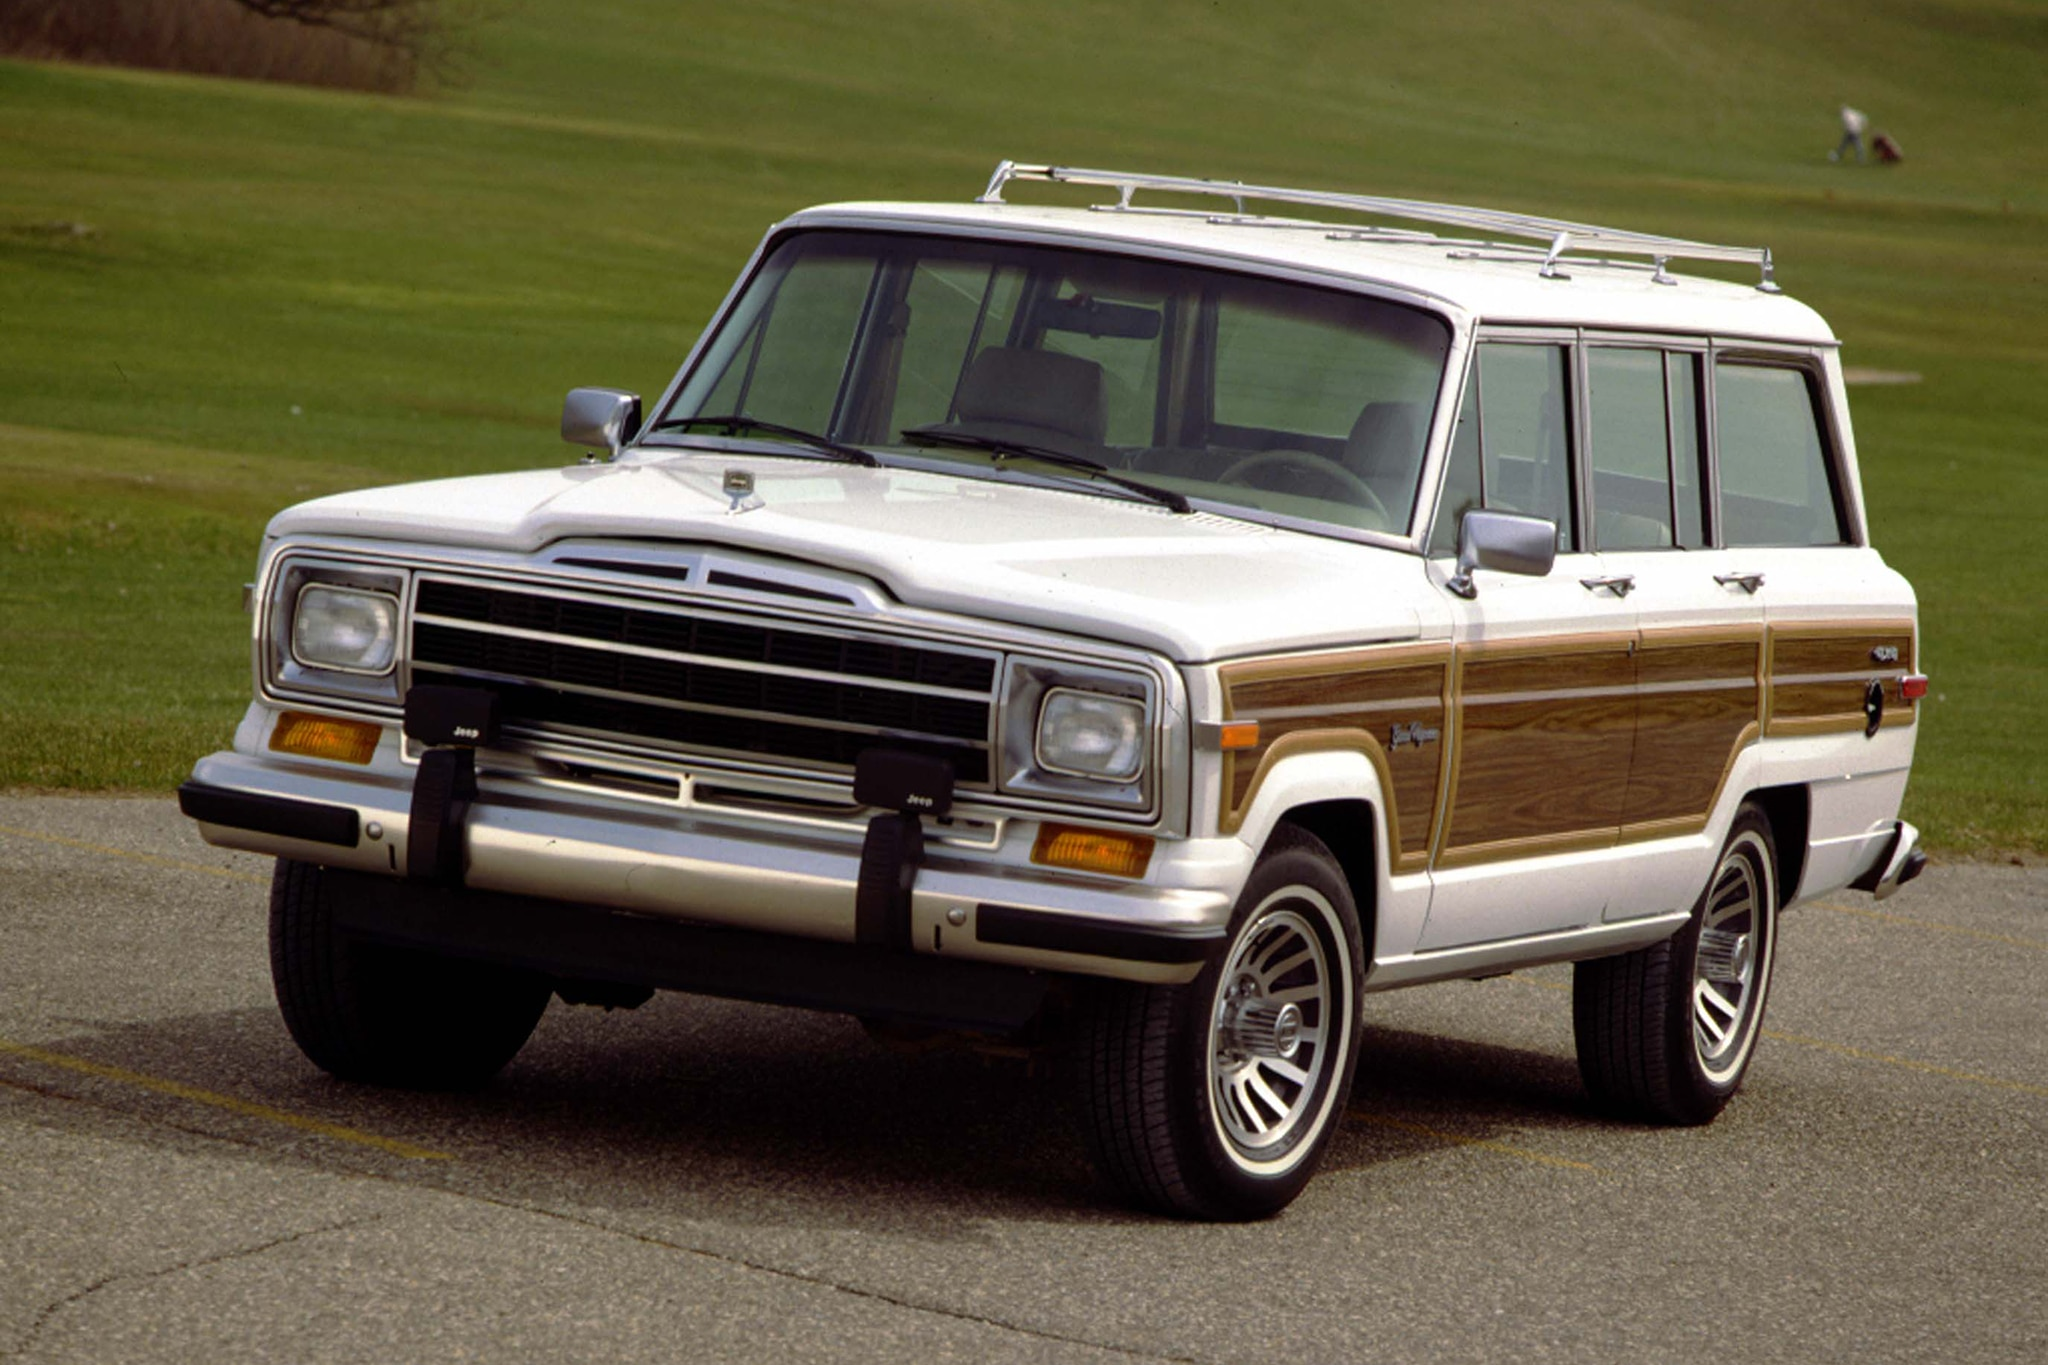 jeep grand wagoneer could cost up to $140,000: report | automobile